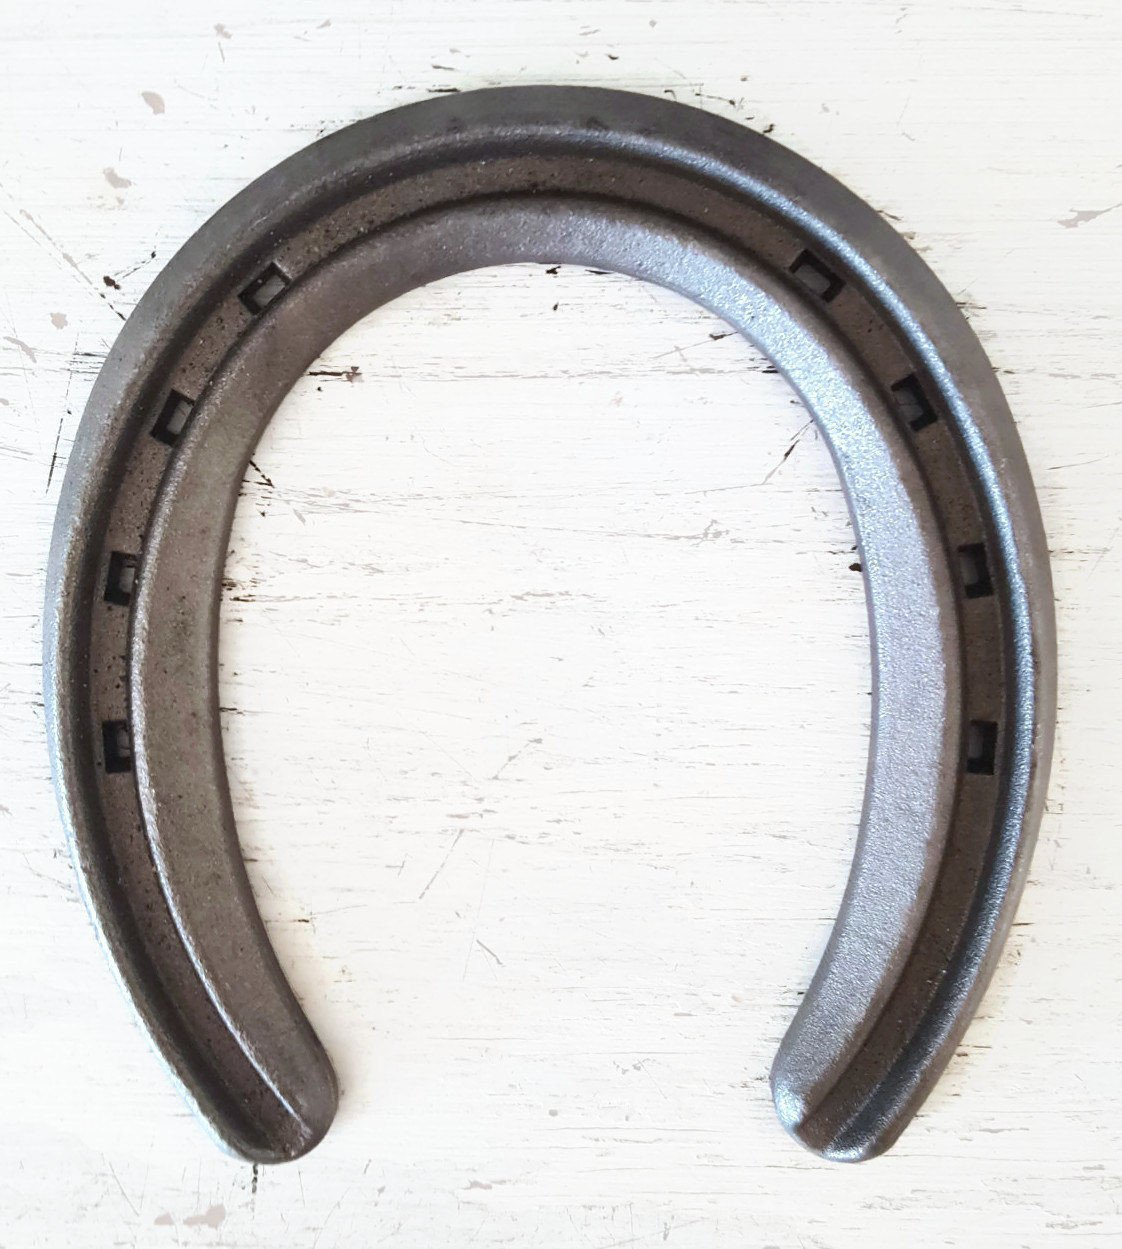 New Steel Horseshoes - Lite Rim Size 00 -Sand Blasted- Heritage Forge - 2 Shoes